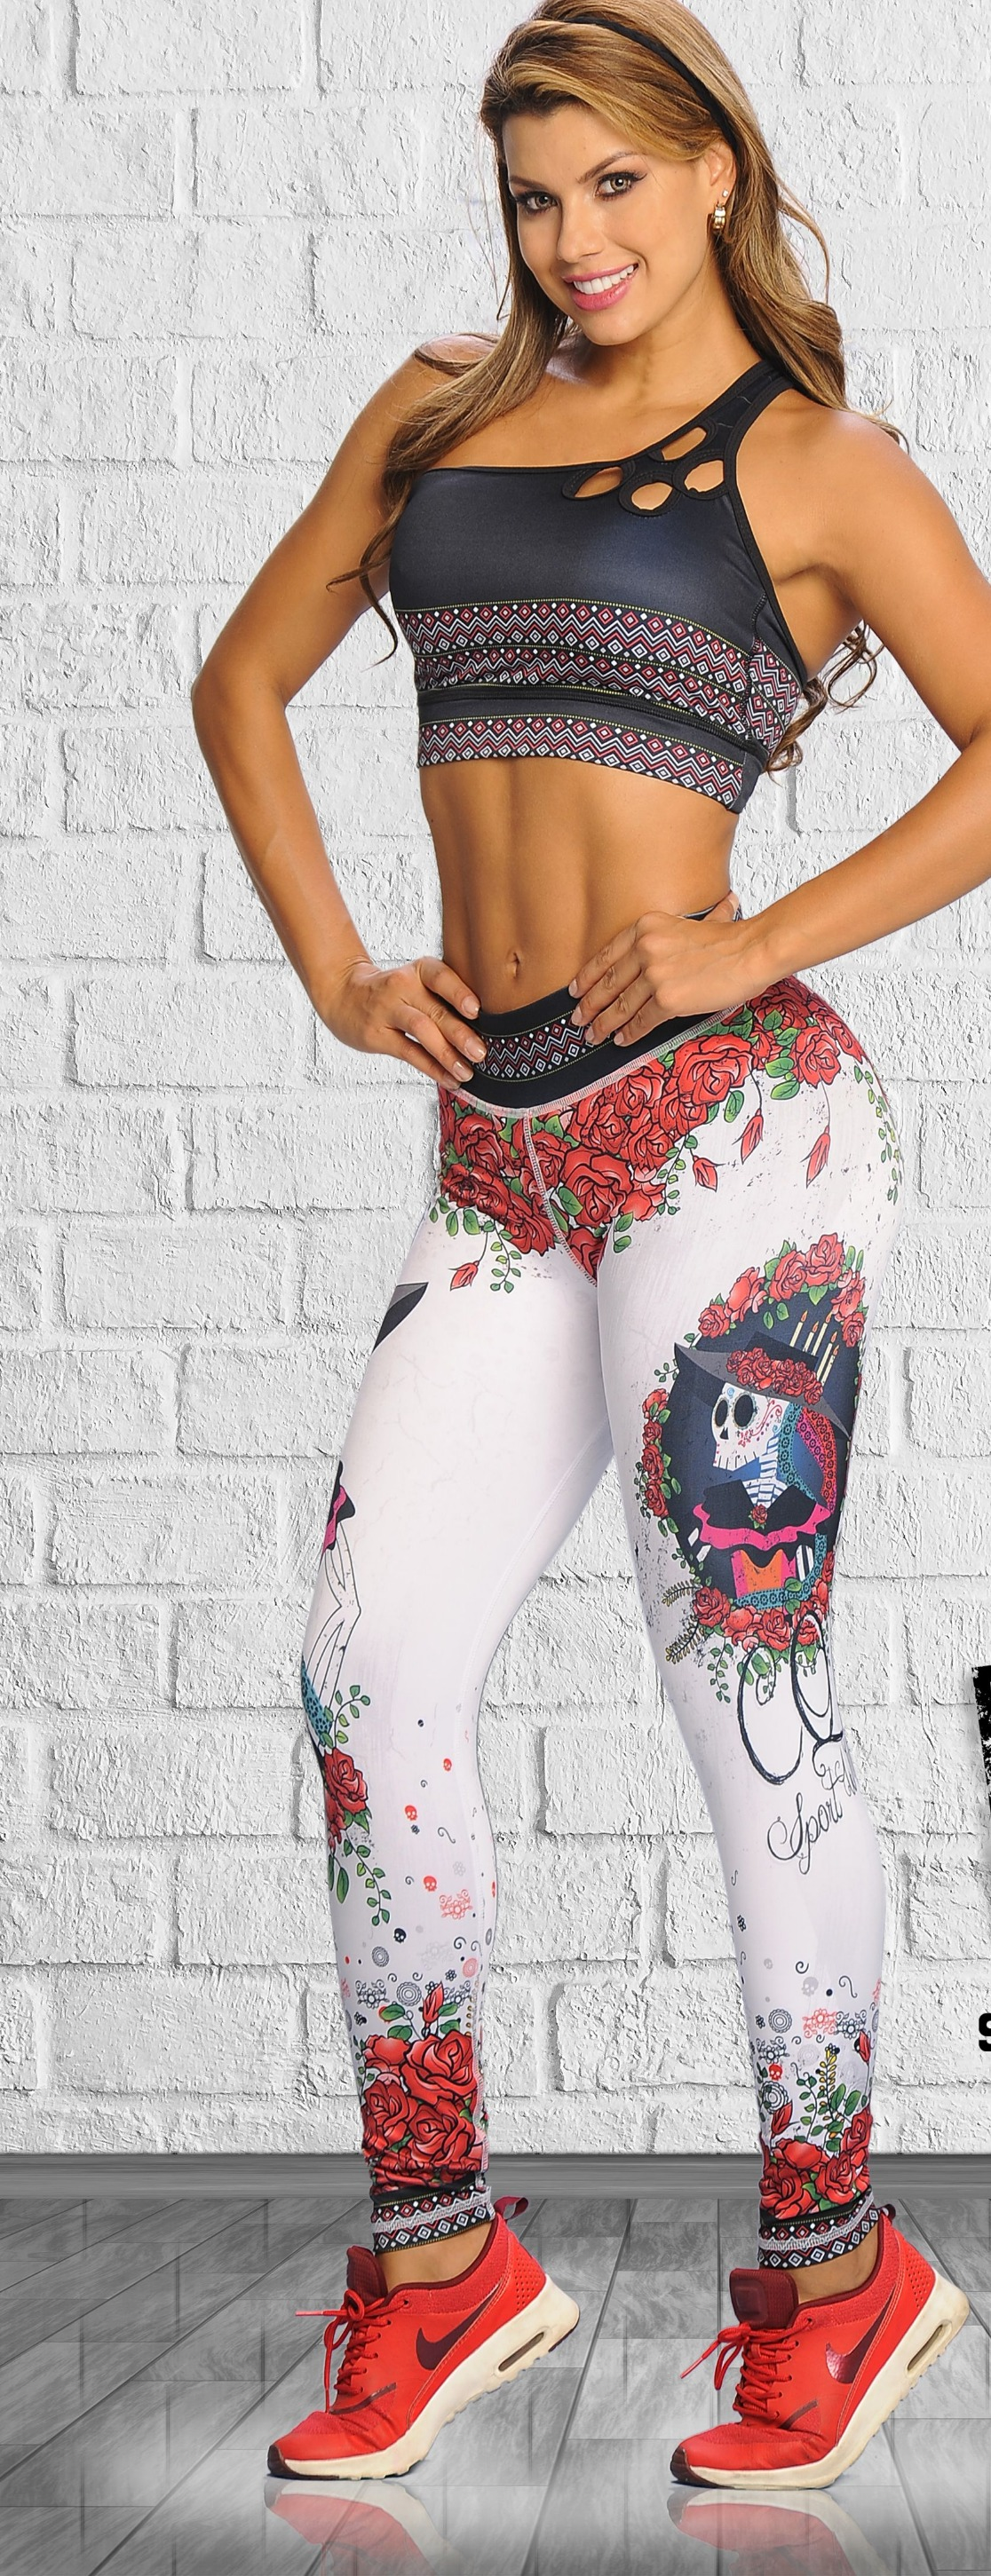 Ropa%20Fit%20Para%20Mujer%20-%20Luce%20H